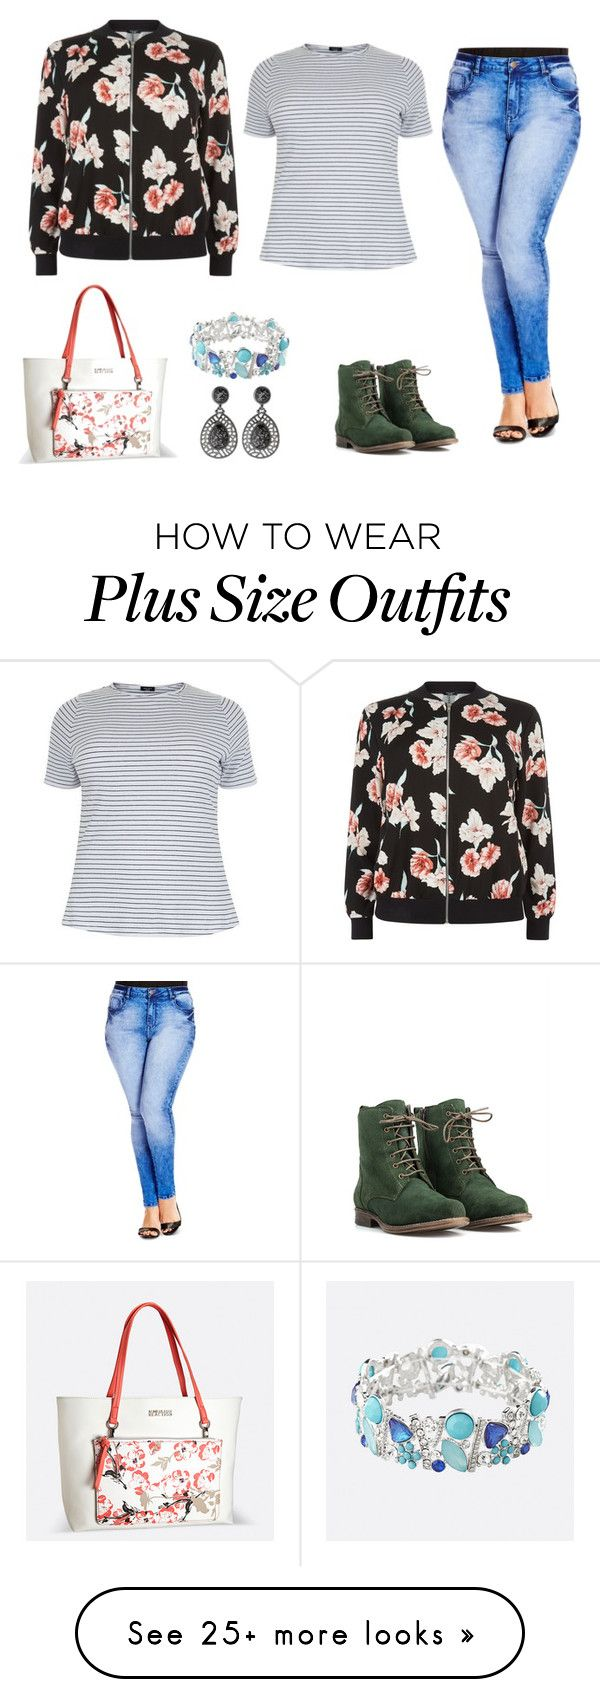 """""""Be happy with your size"""" by fashiongirlprox on Polyvore featuring City Chic, New Look, JJ Footwear and Avenue"""